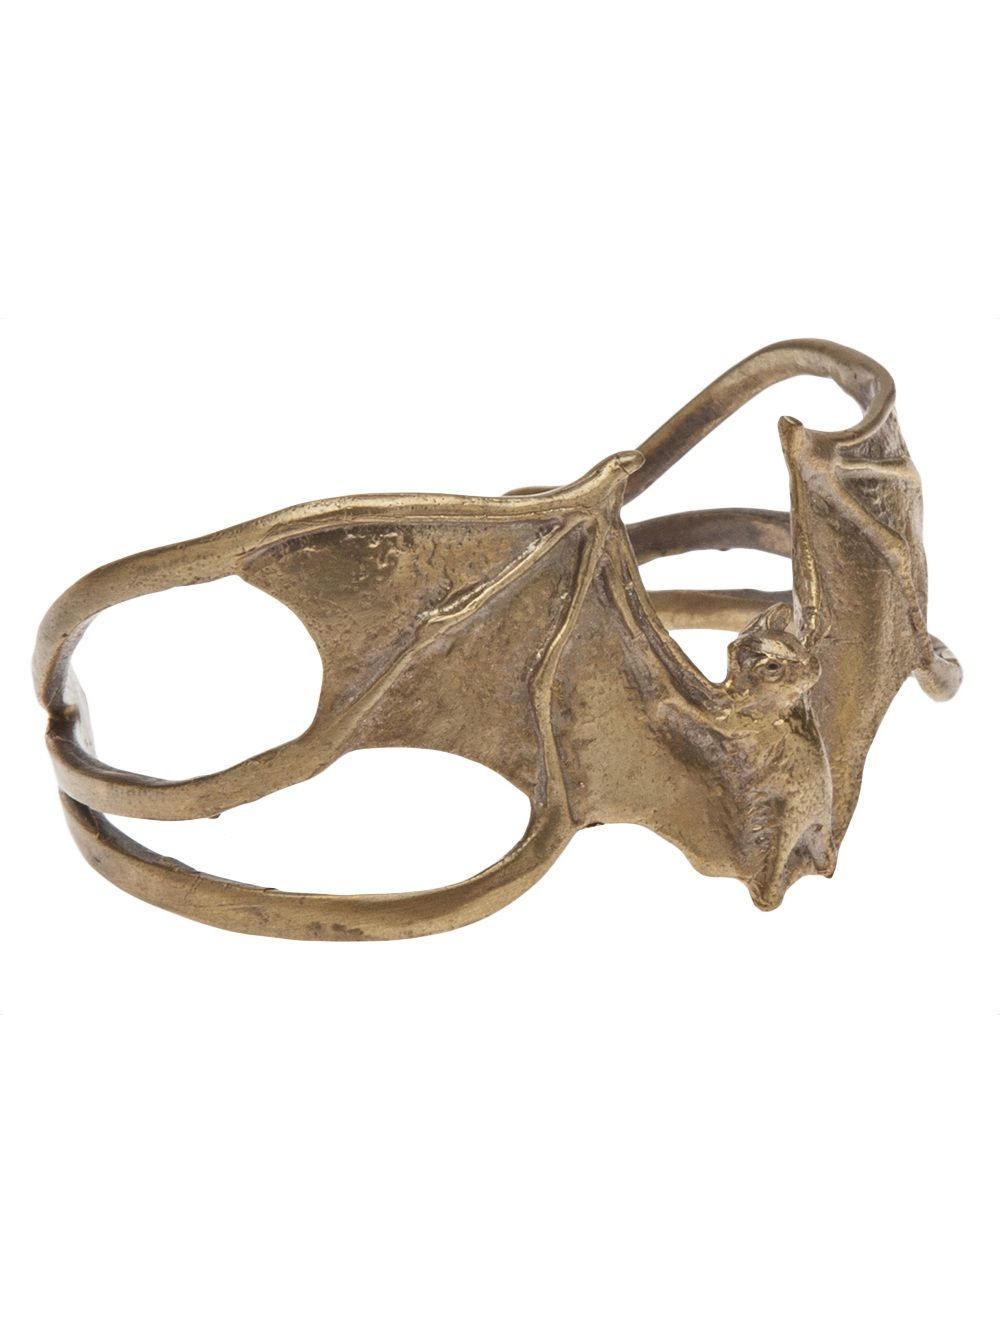 "Bat cuff in bronze from Alkemie Jewlery. This mixed metal cuff features a bat center with engraved detail, asymmetric side cutaway detail, and curved edges. Measures: 2.5""W x 2""L."